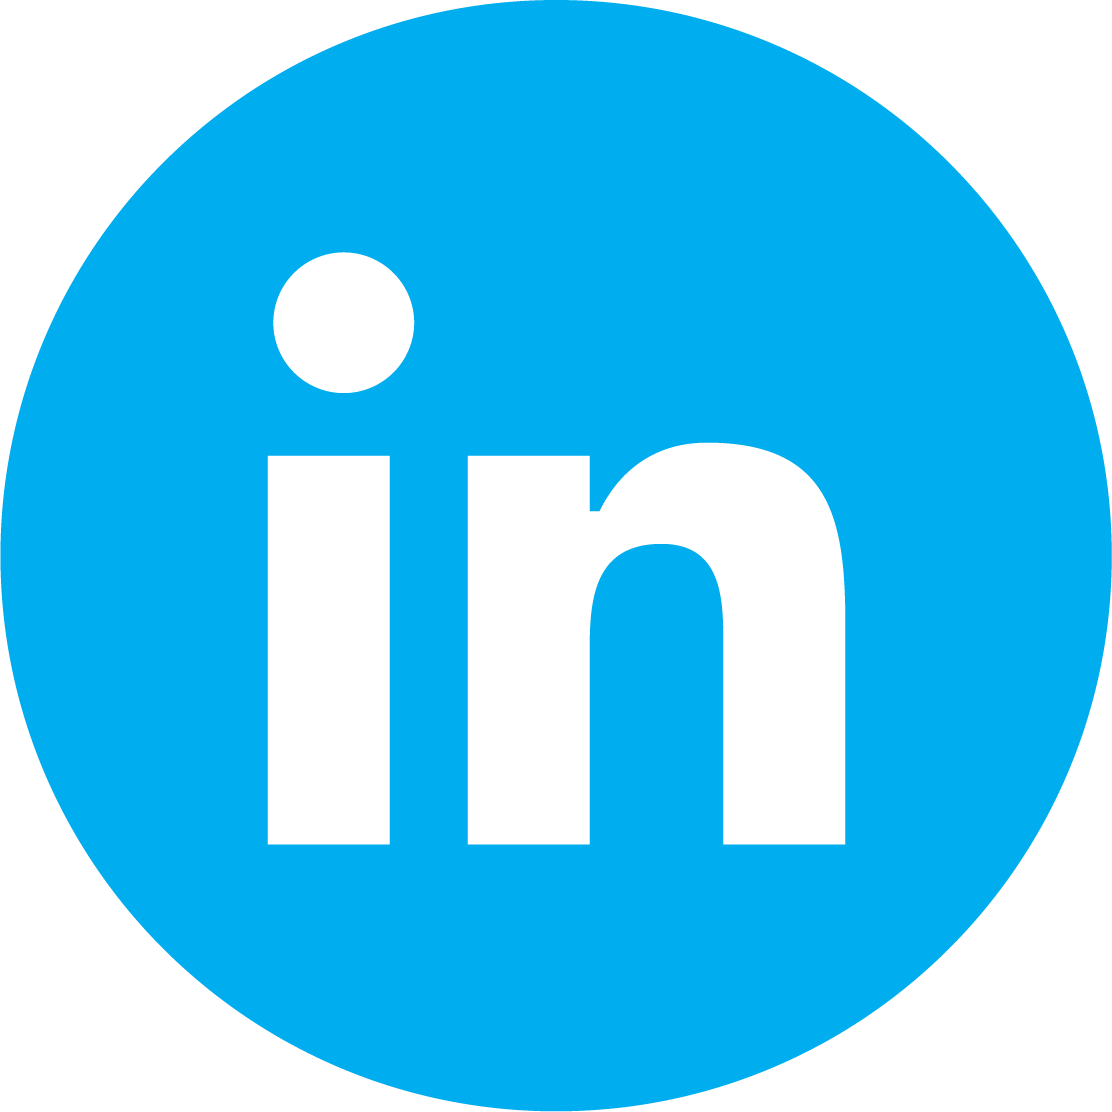 ideon branding consultancy nyc linkedin logo